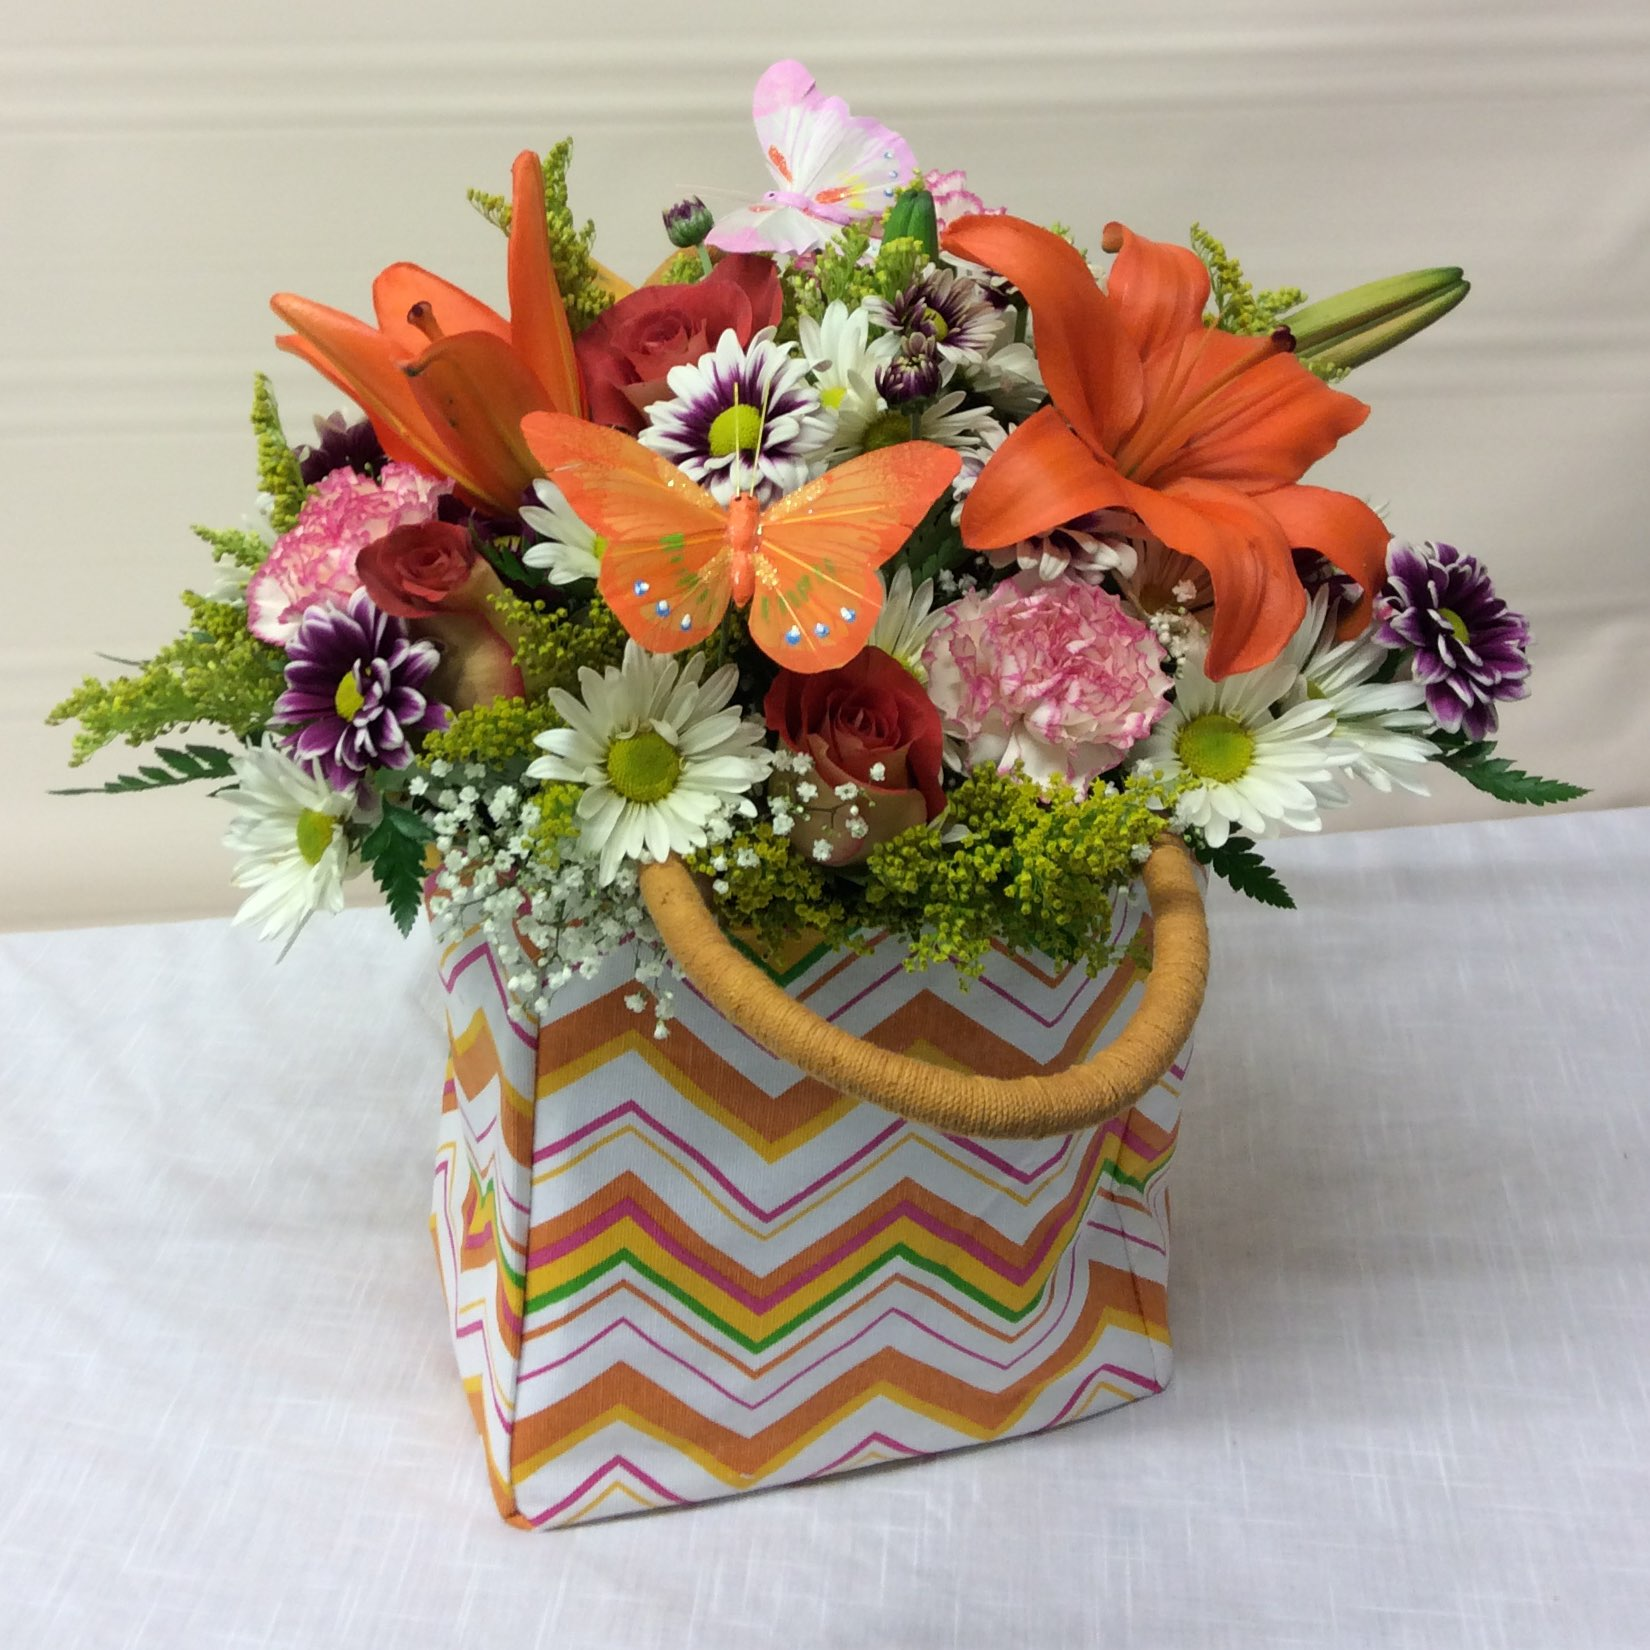 Pin By Freds Flowers Gifts On Our Flower Designs Pinterest